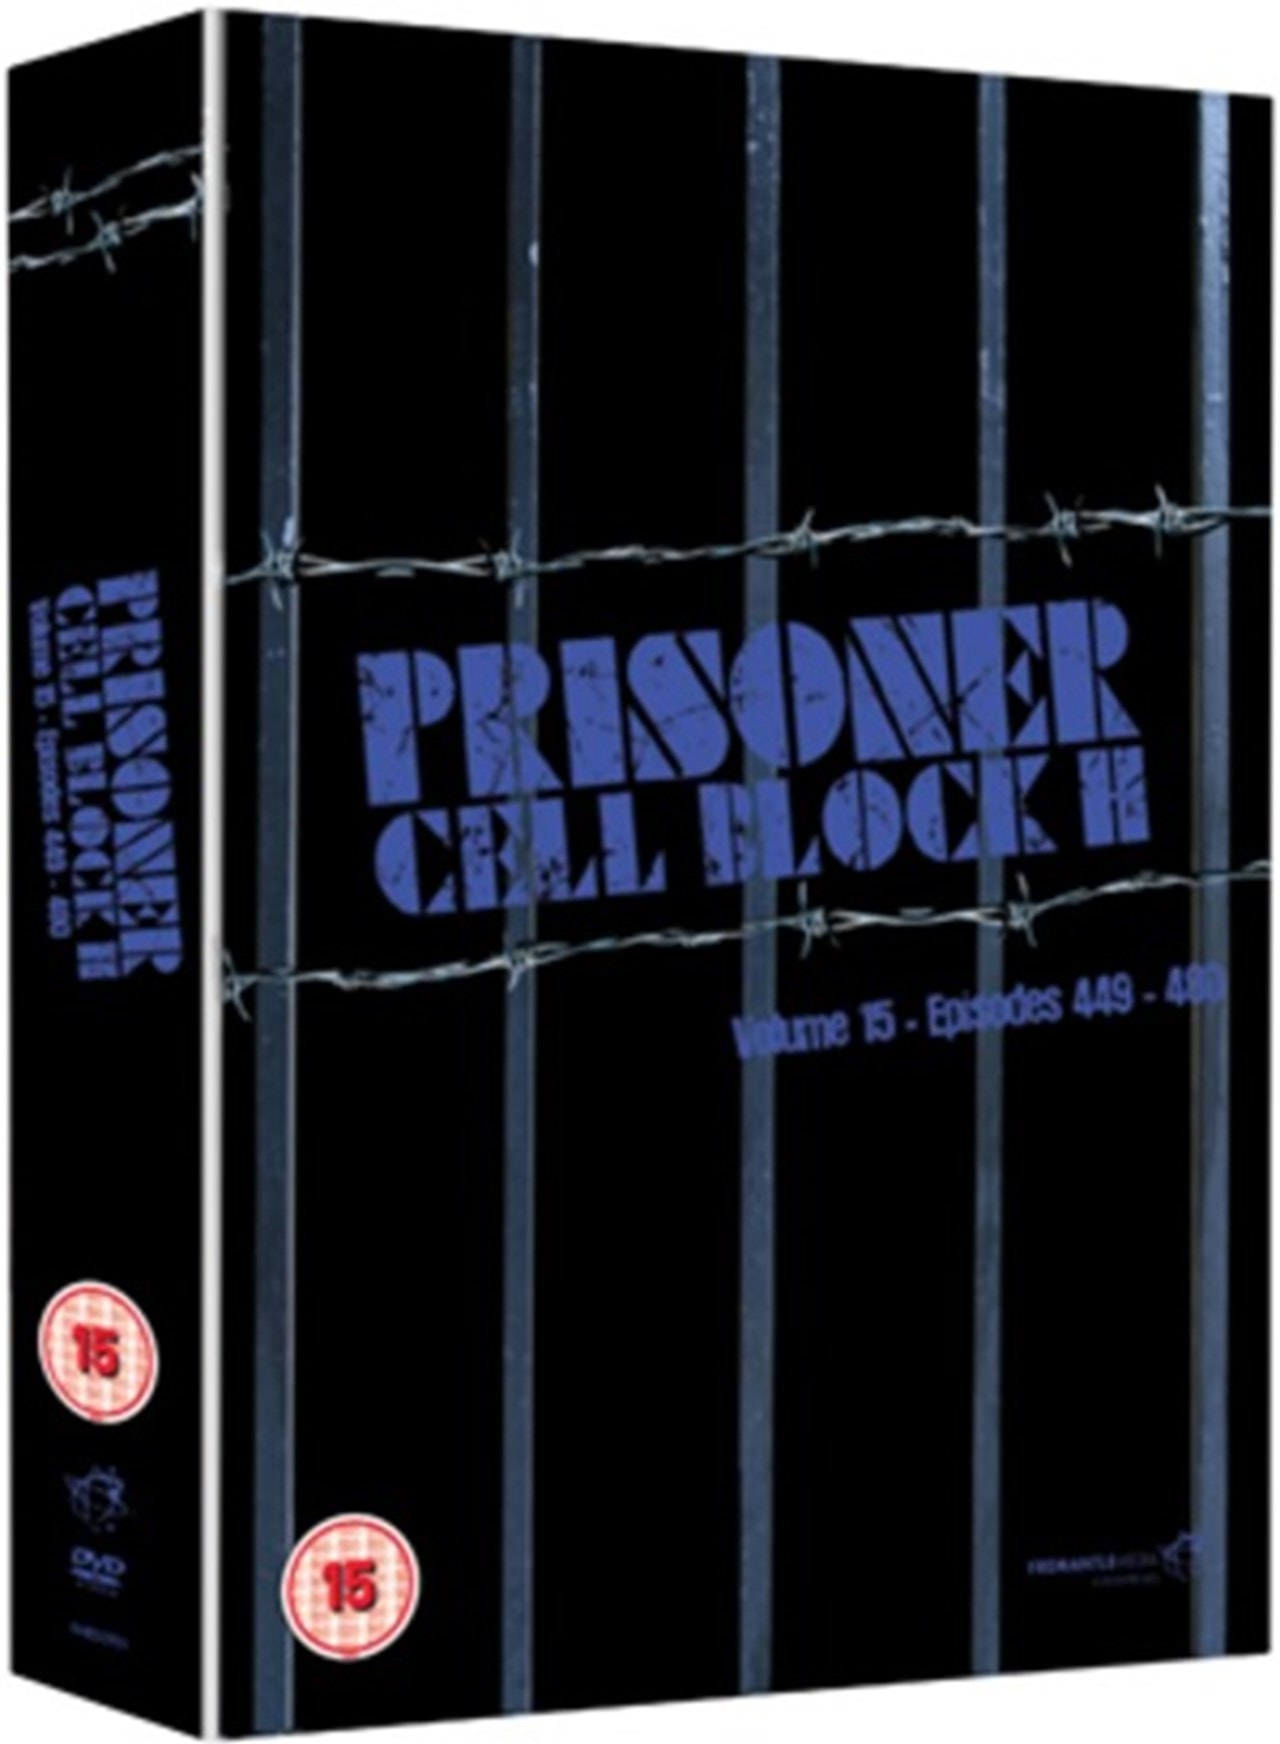 Prisoner Cell Block H: Volume 15 - 1